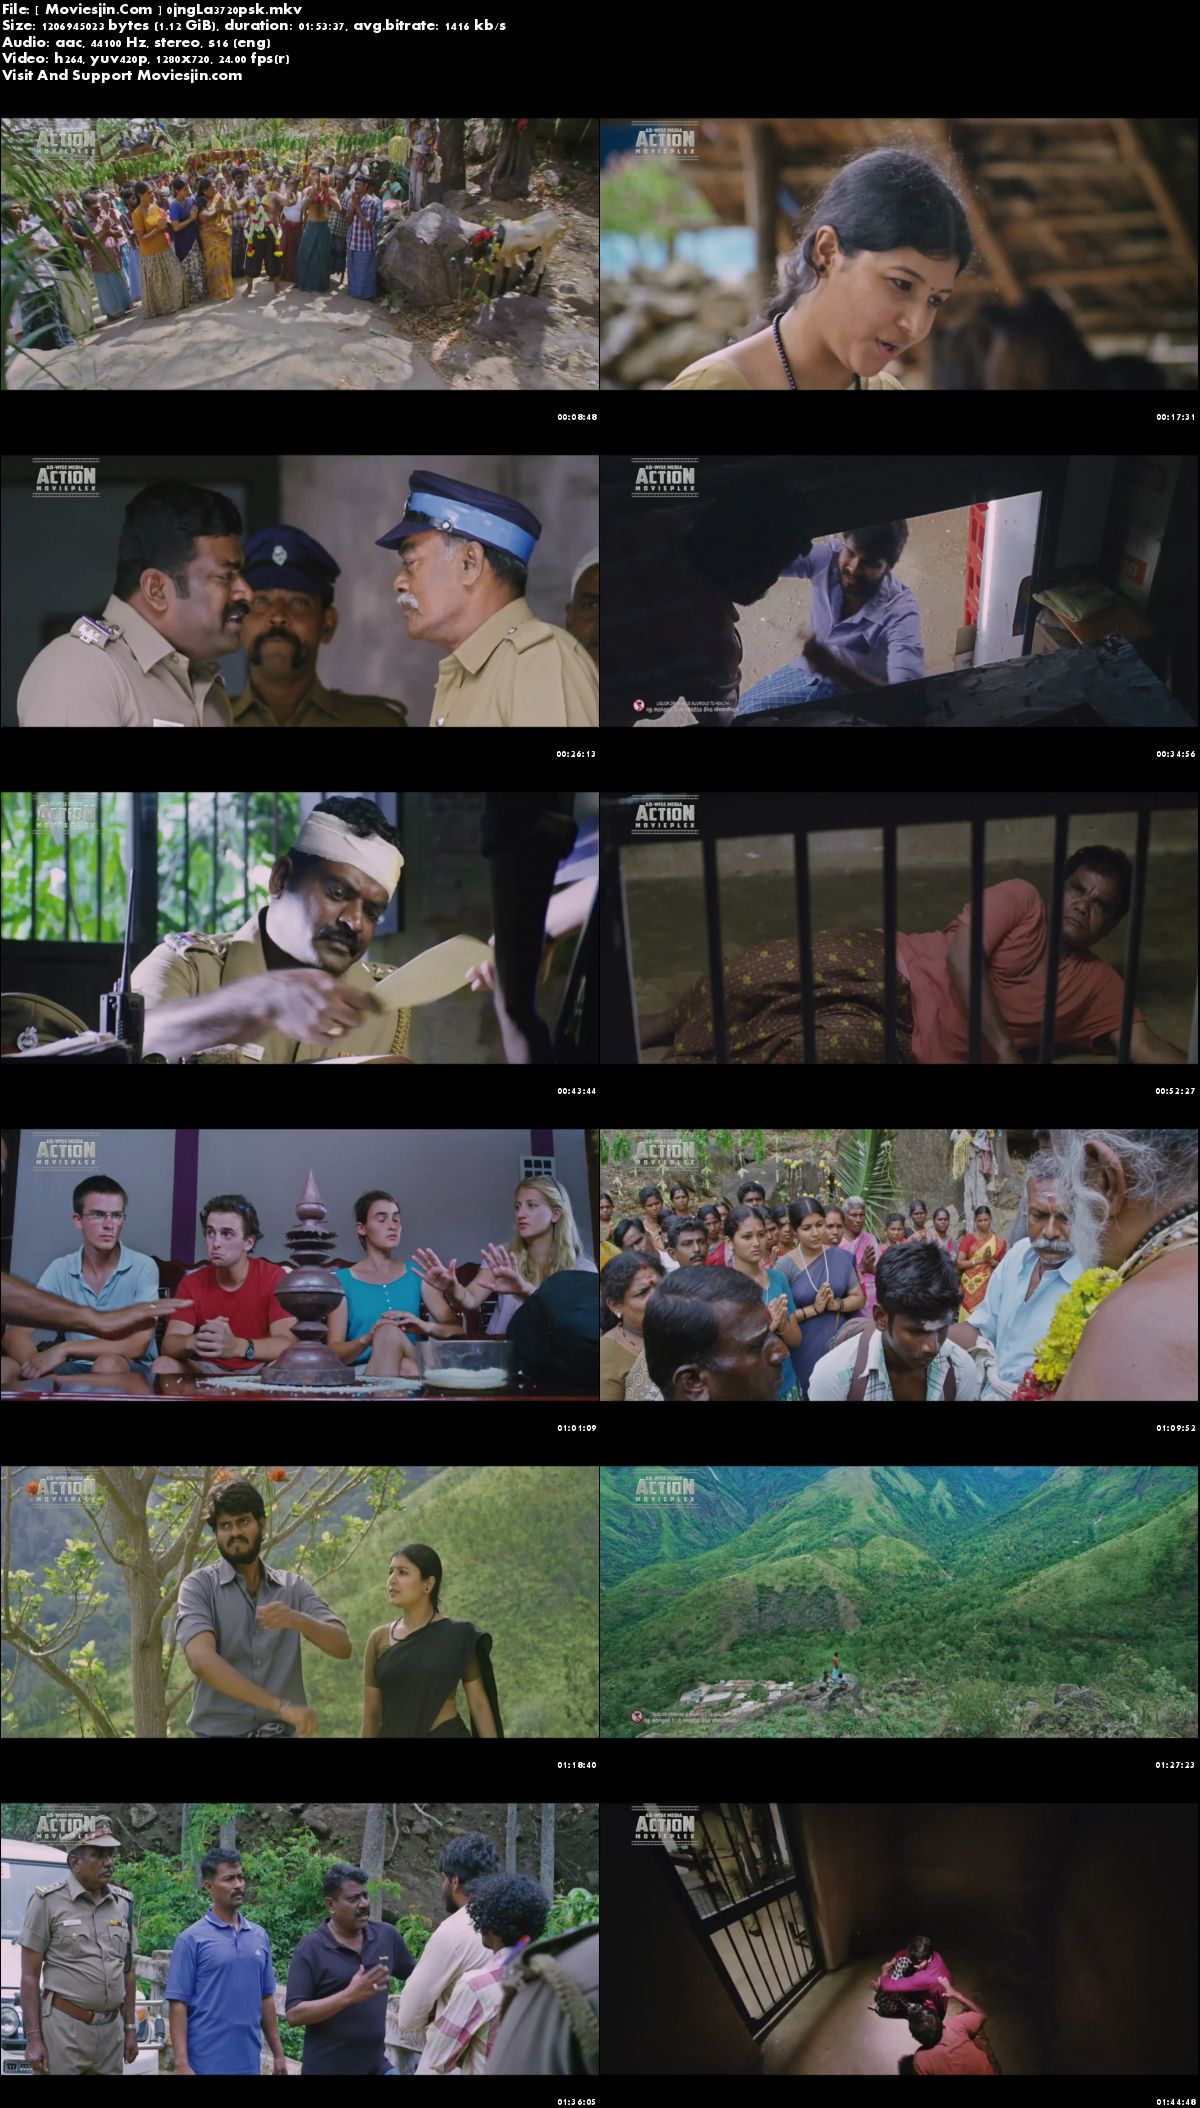 Watch Online Jungle Thoppi 2018 Movie x264 Hindi Dubbed 720p Full Movie Download mkvcage